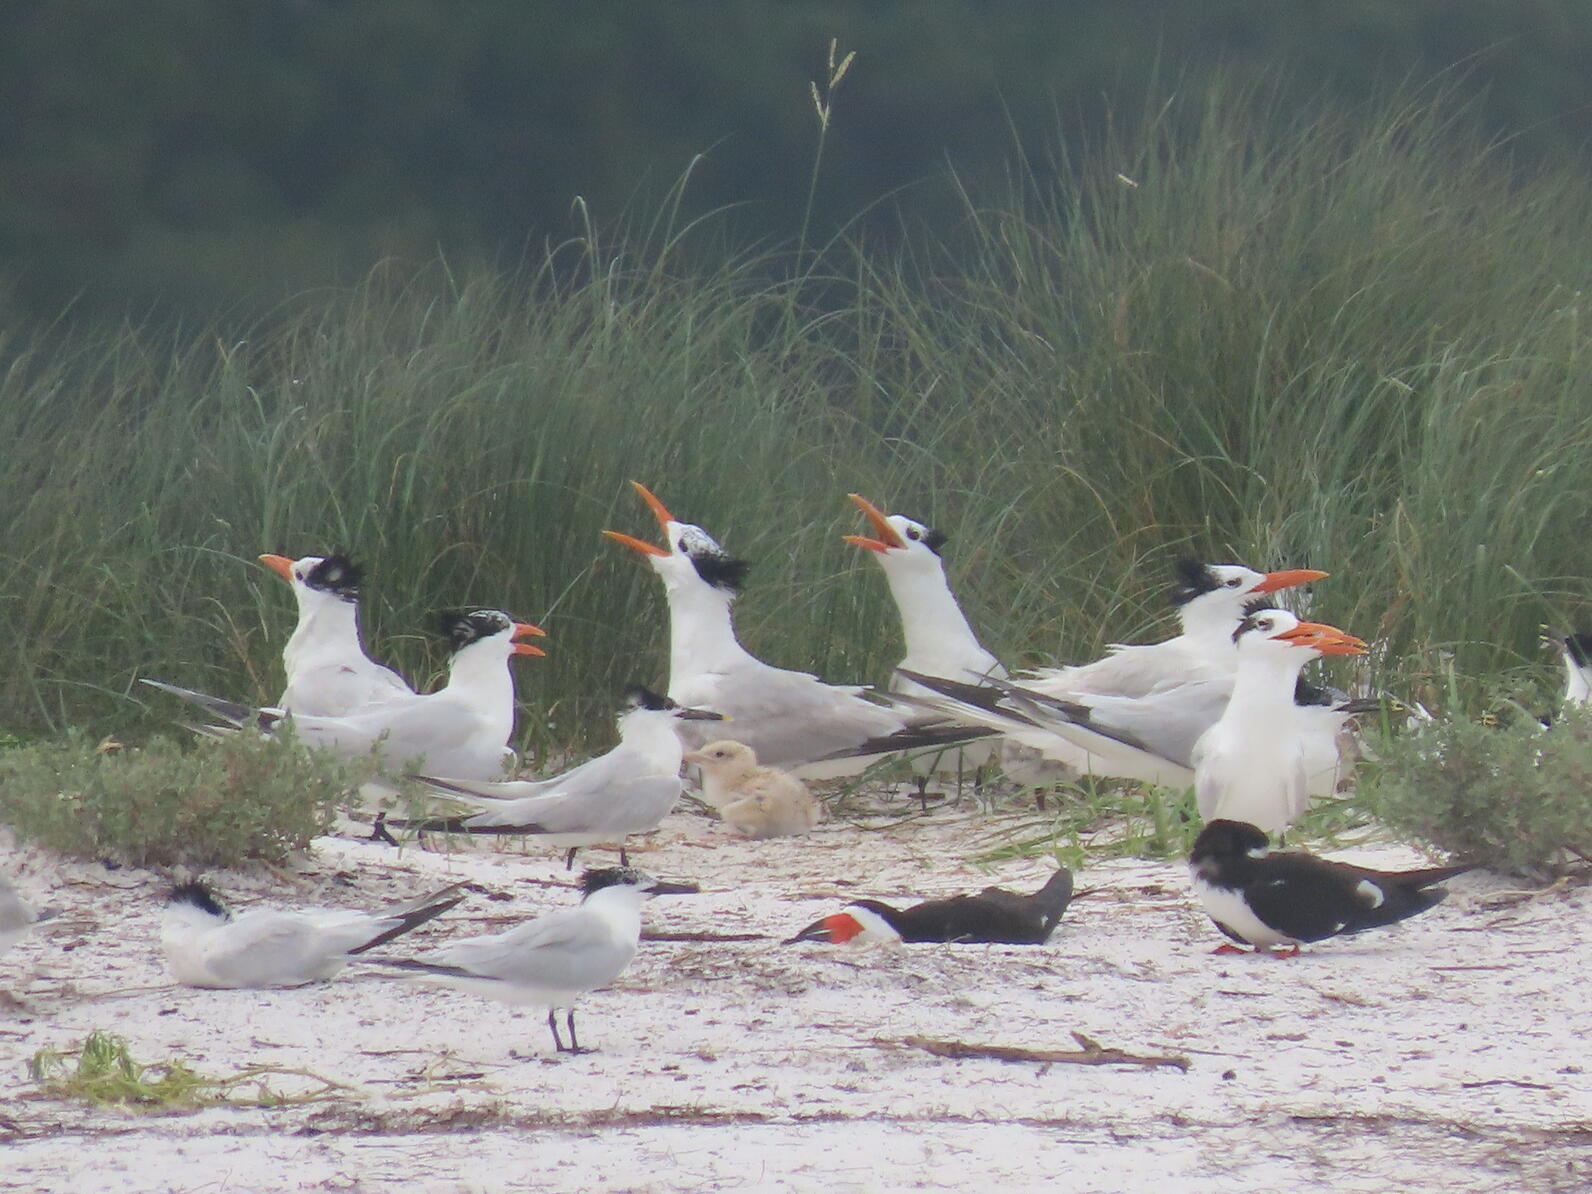 Nesting Royal Terns, Sandwich Terns, and Black Skimmers, as well as a Royal Tern chick.